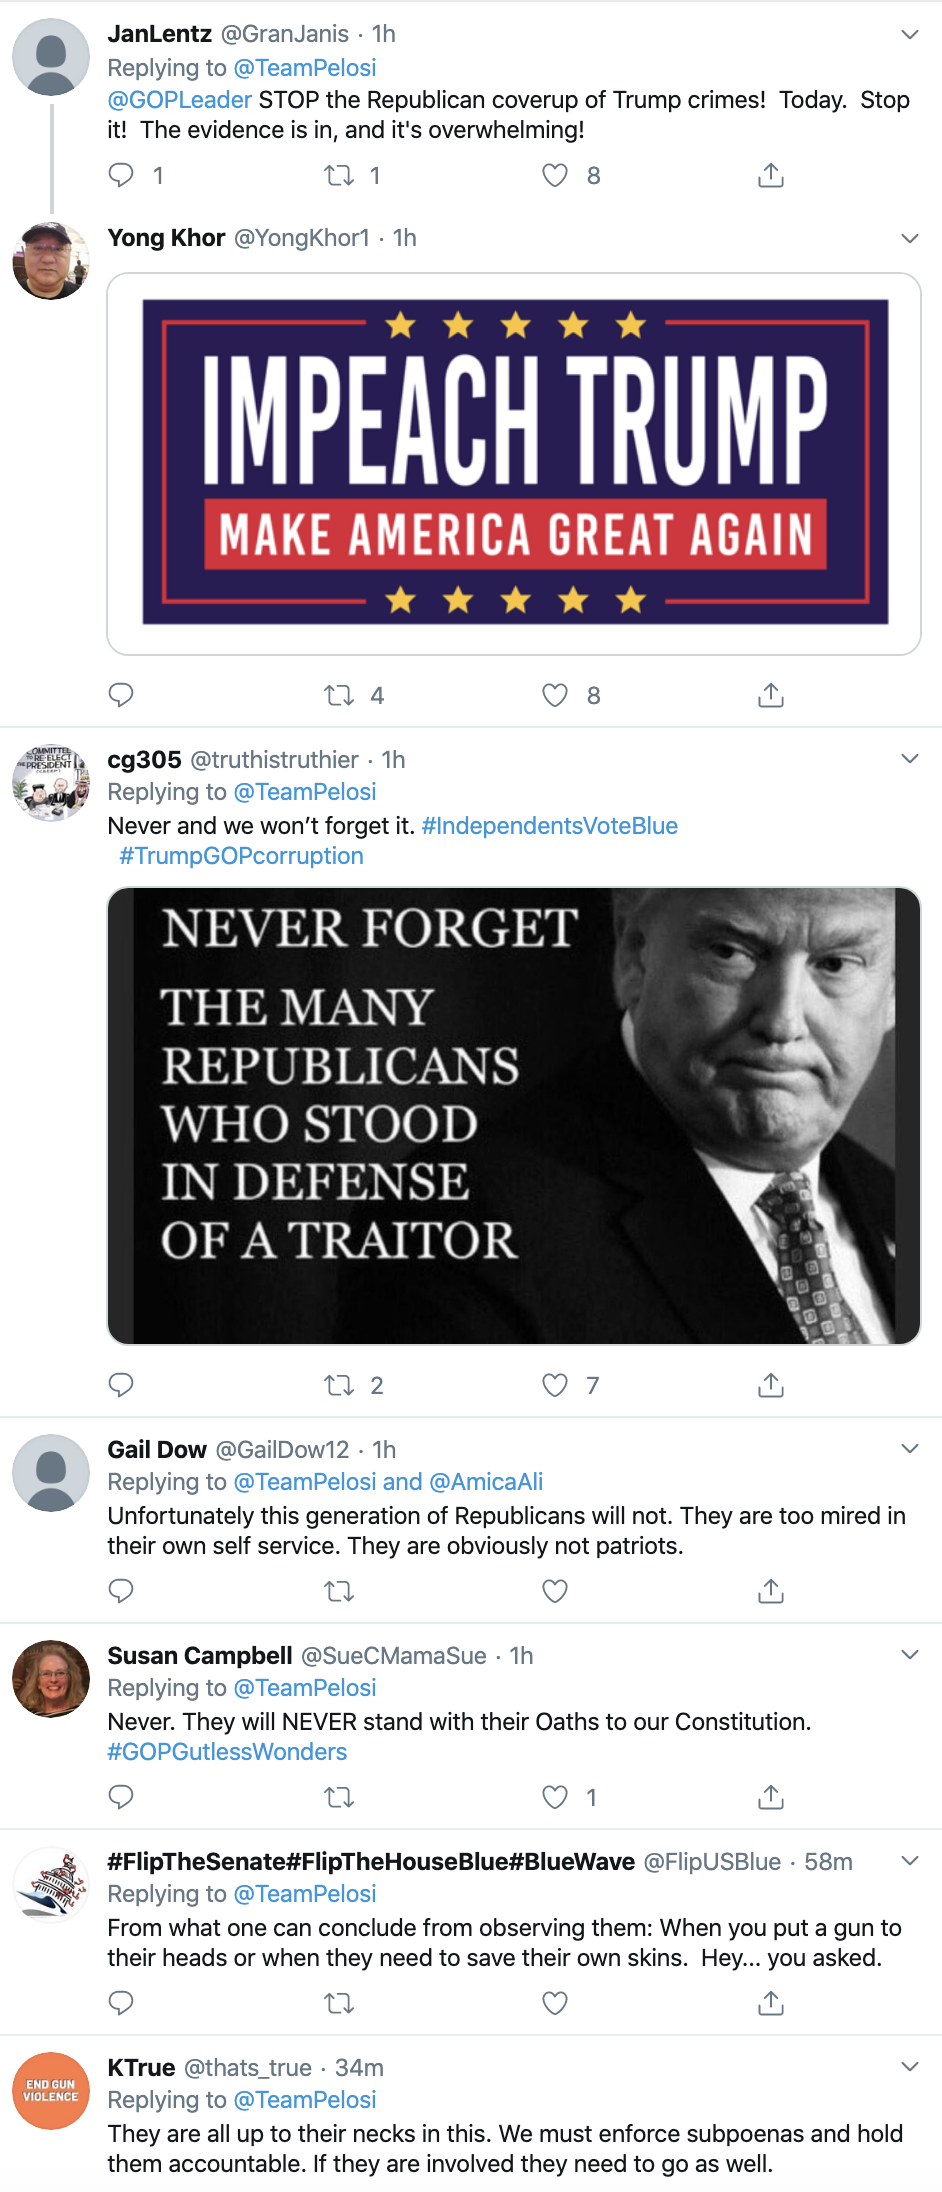 Screen-Shot-2019-11-21-at-9.24.11-AM Pelosi Takes Trump Down On Twitter After Witness Tampering Tweet Corruption Crime Featured Impeachment Top Stories